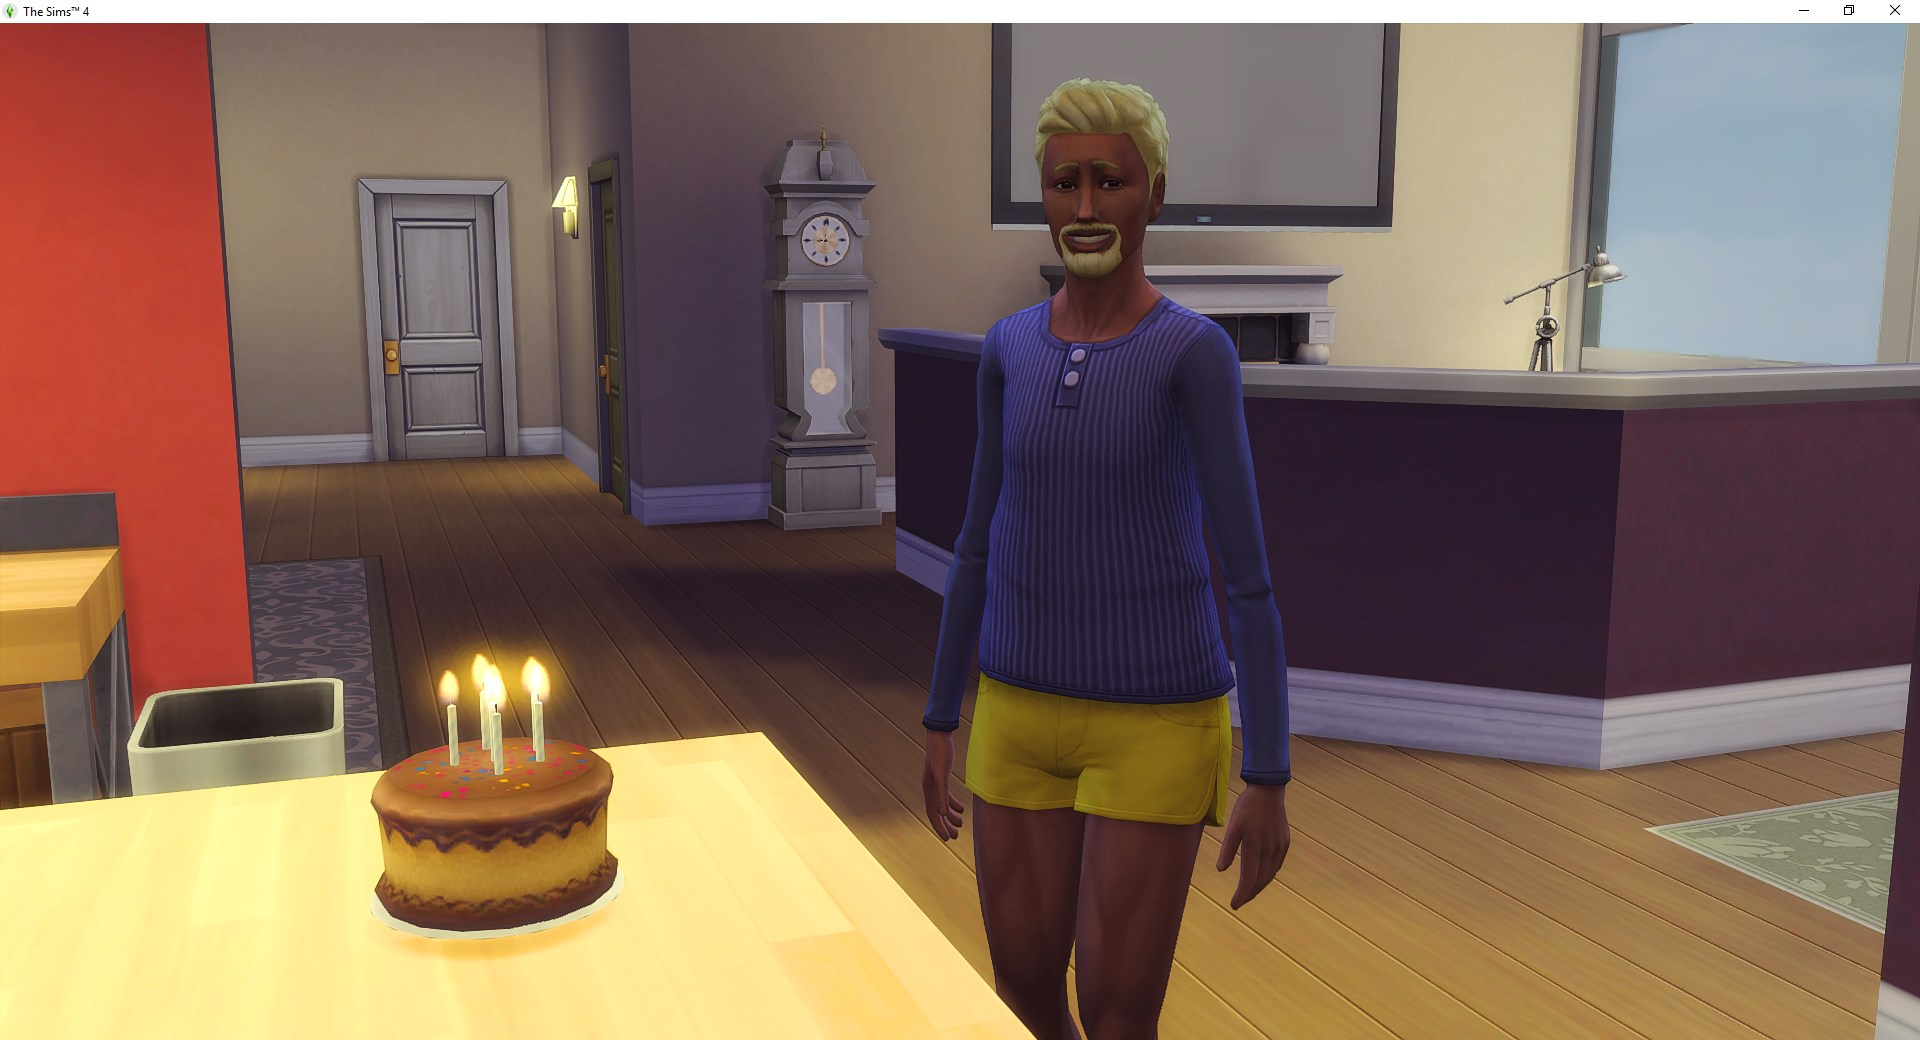 2019-12-27 10_22_17-The Sims™ 4